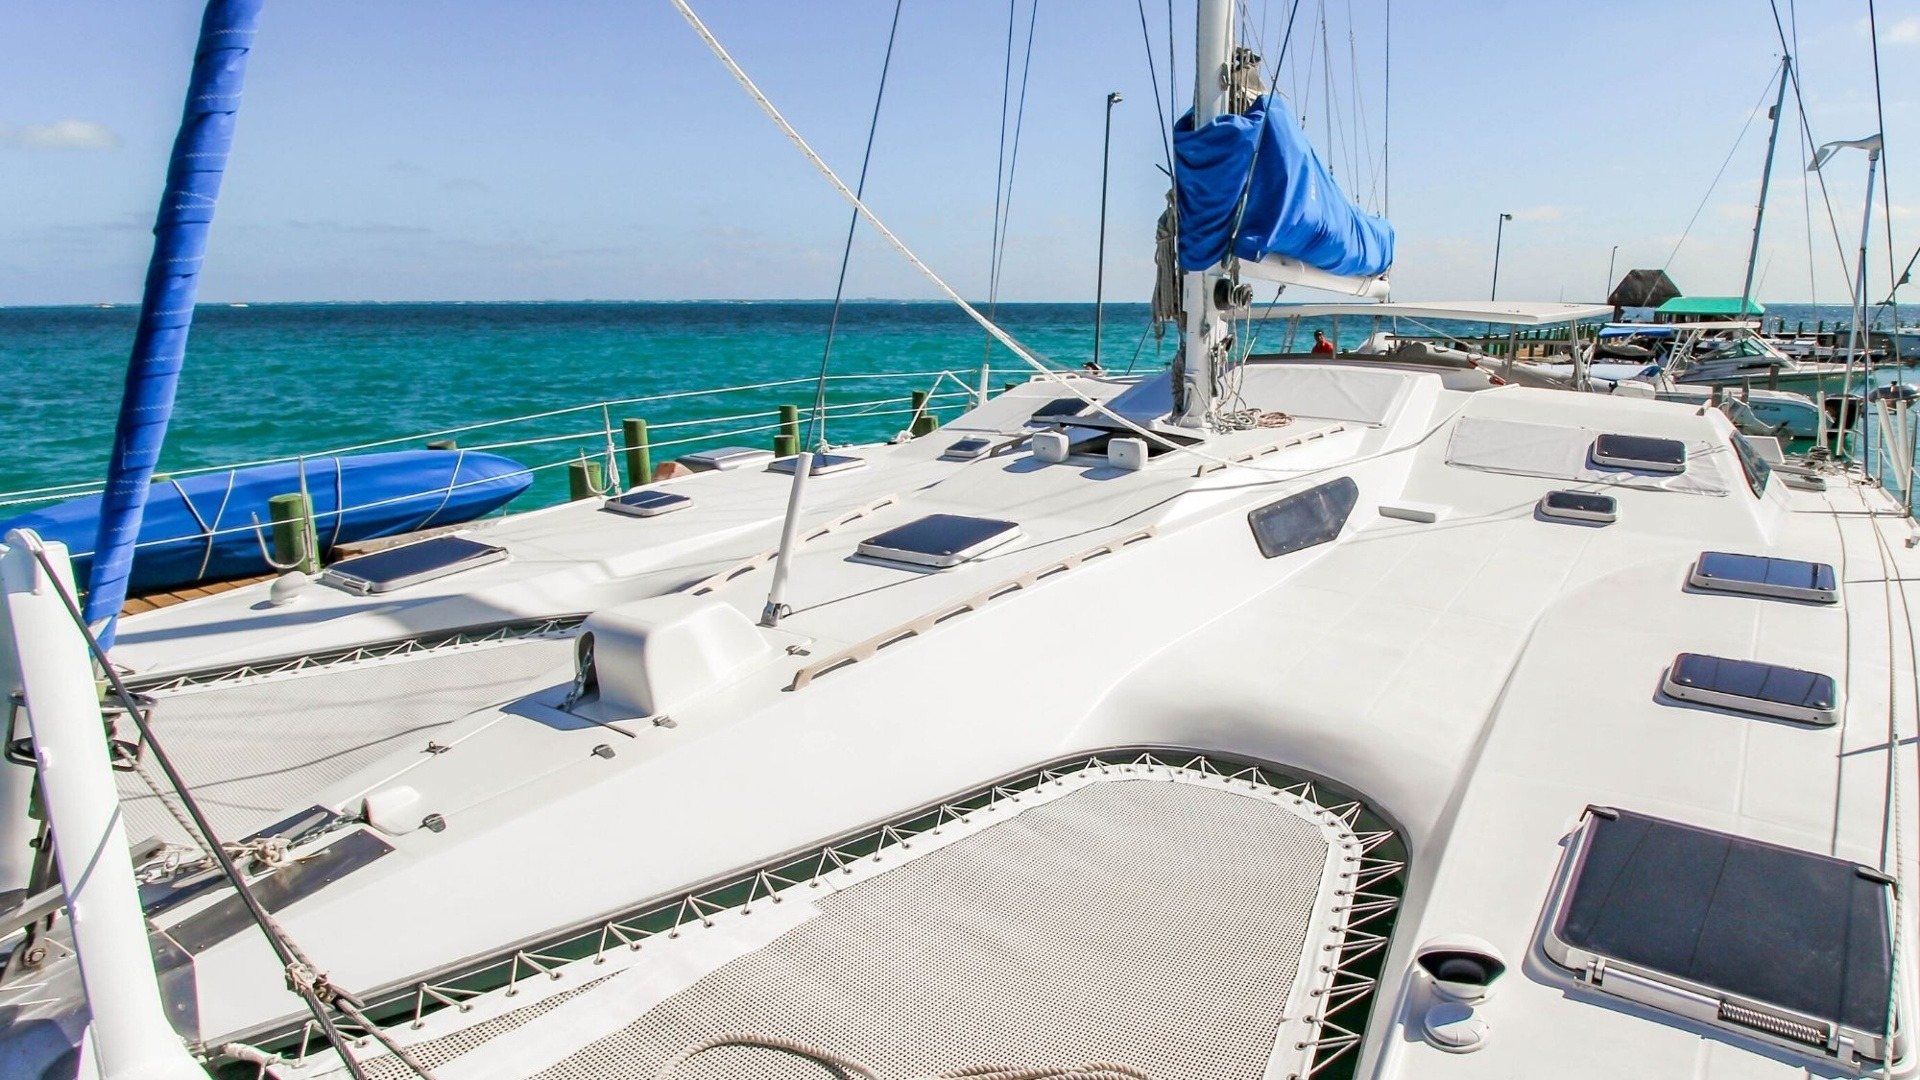 4 - LowRes - Max - Private tour to Isla Mujeres in catamaran - Cancun Sailing